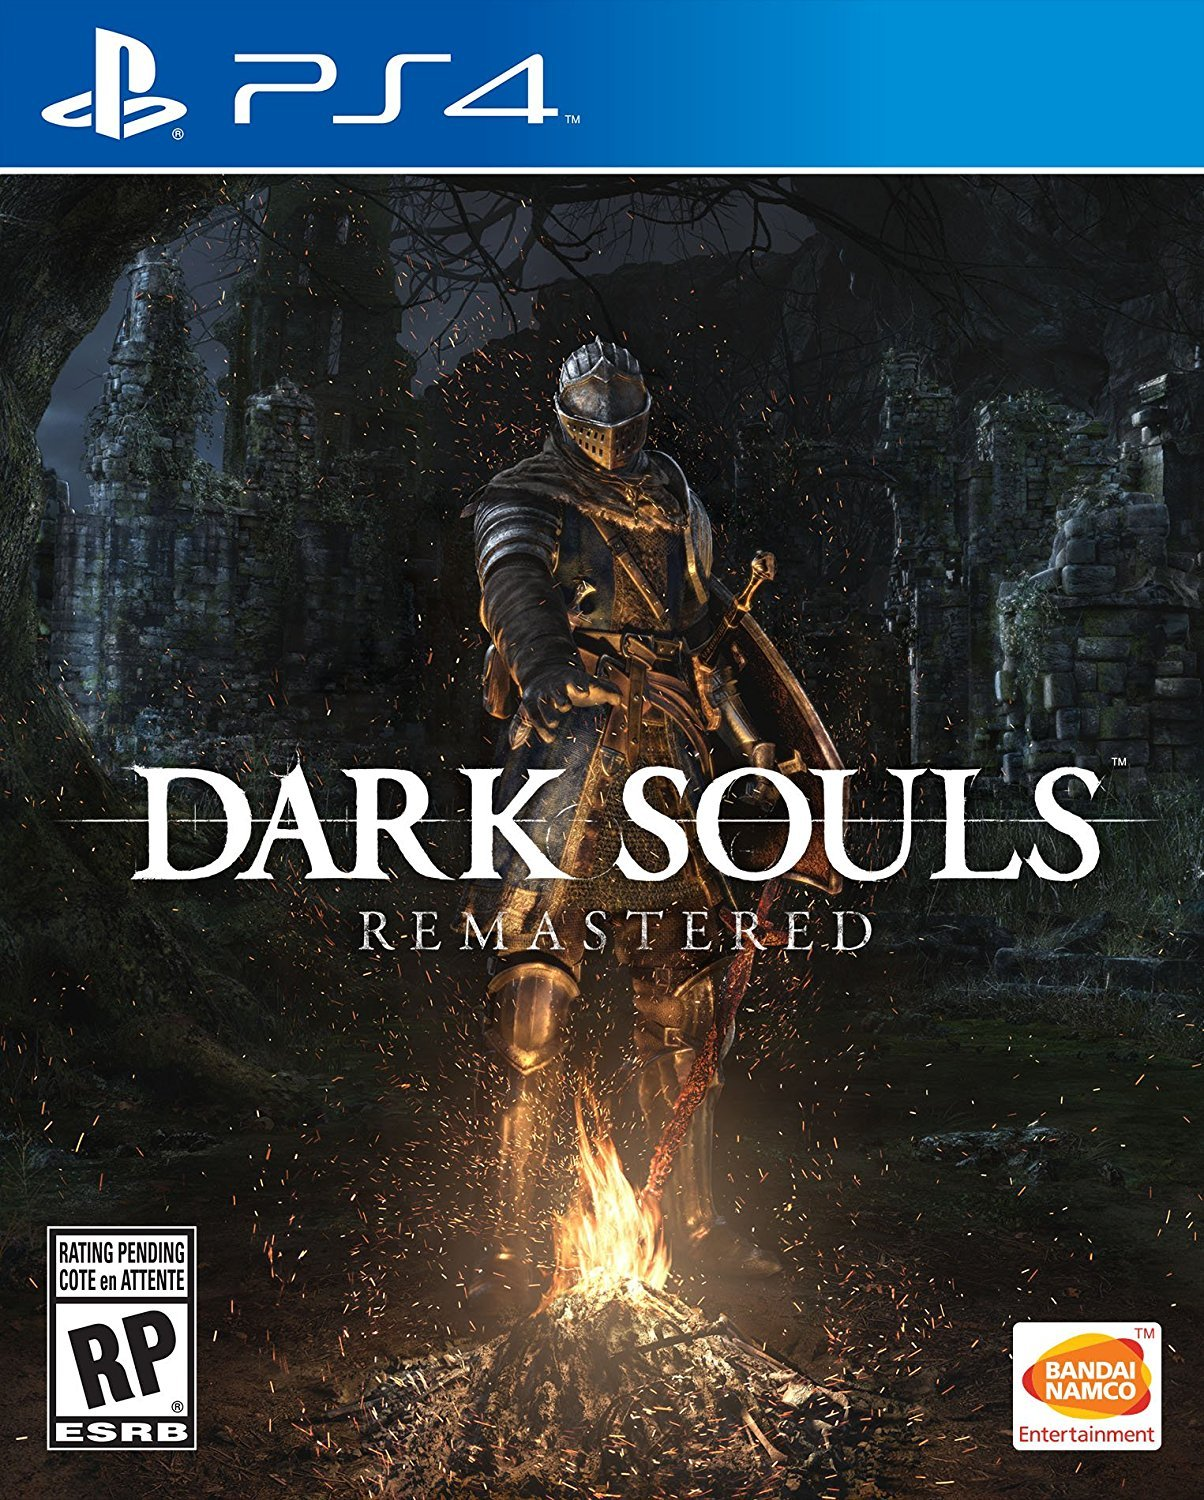 Dark Souls Remastered Switch Review - Prepare to Die On the Go